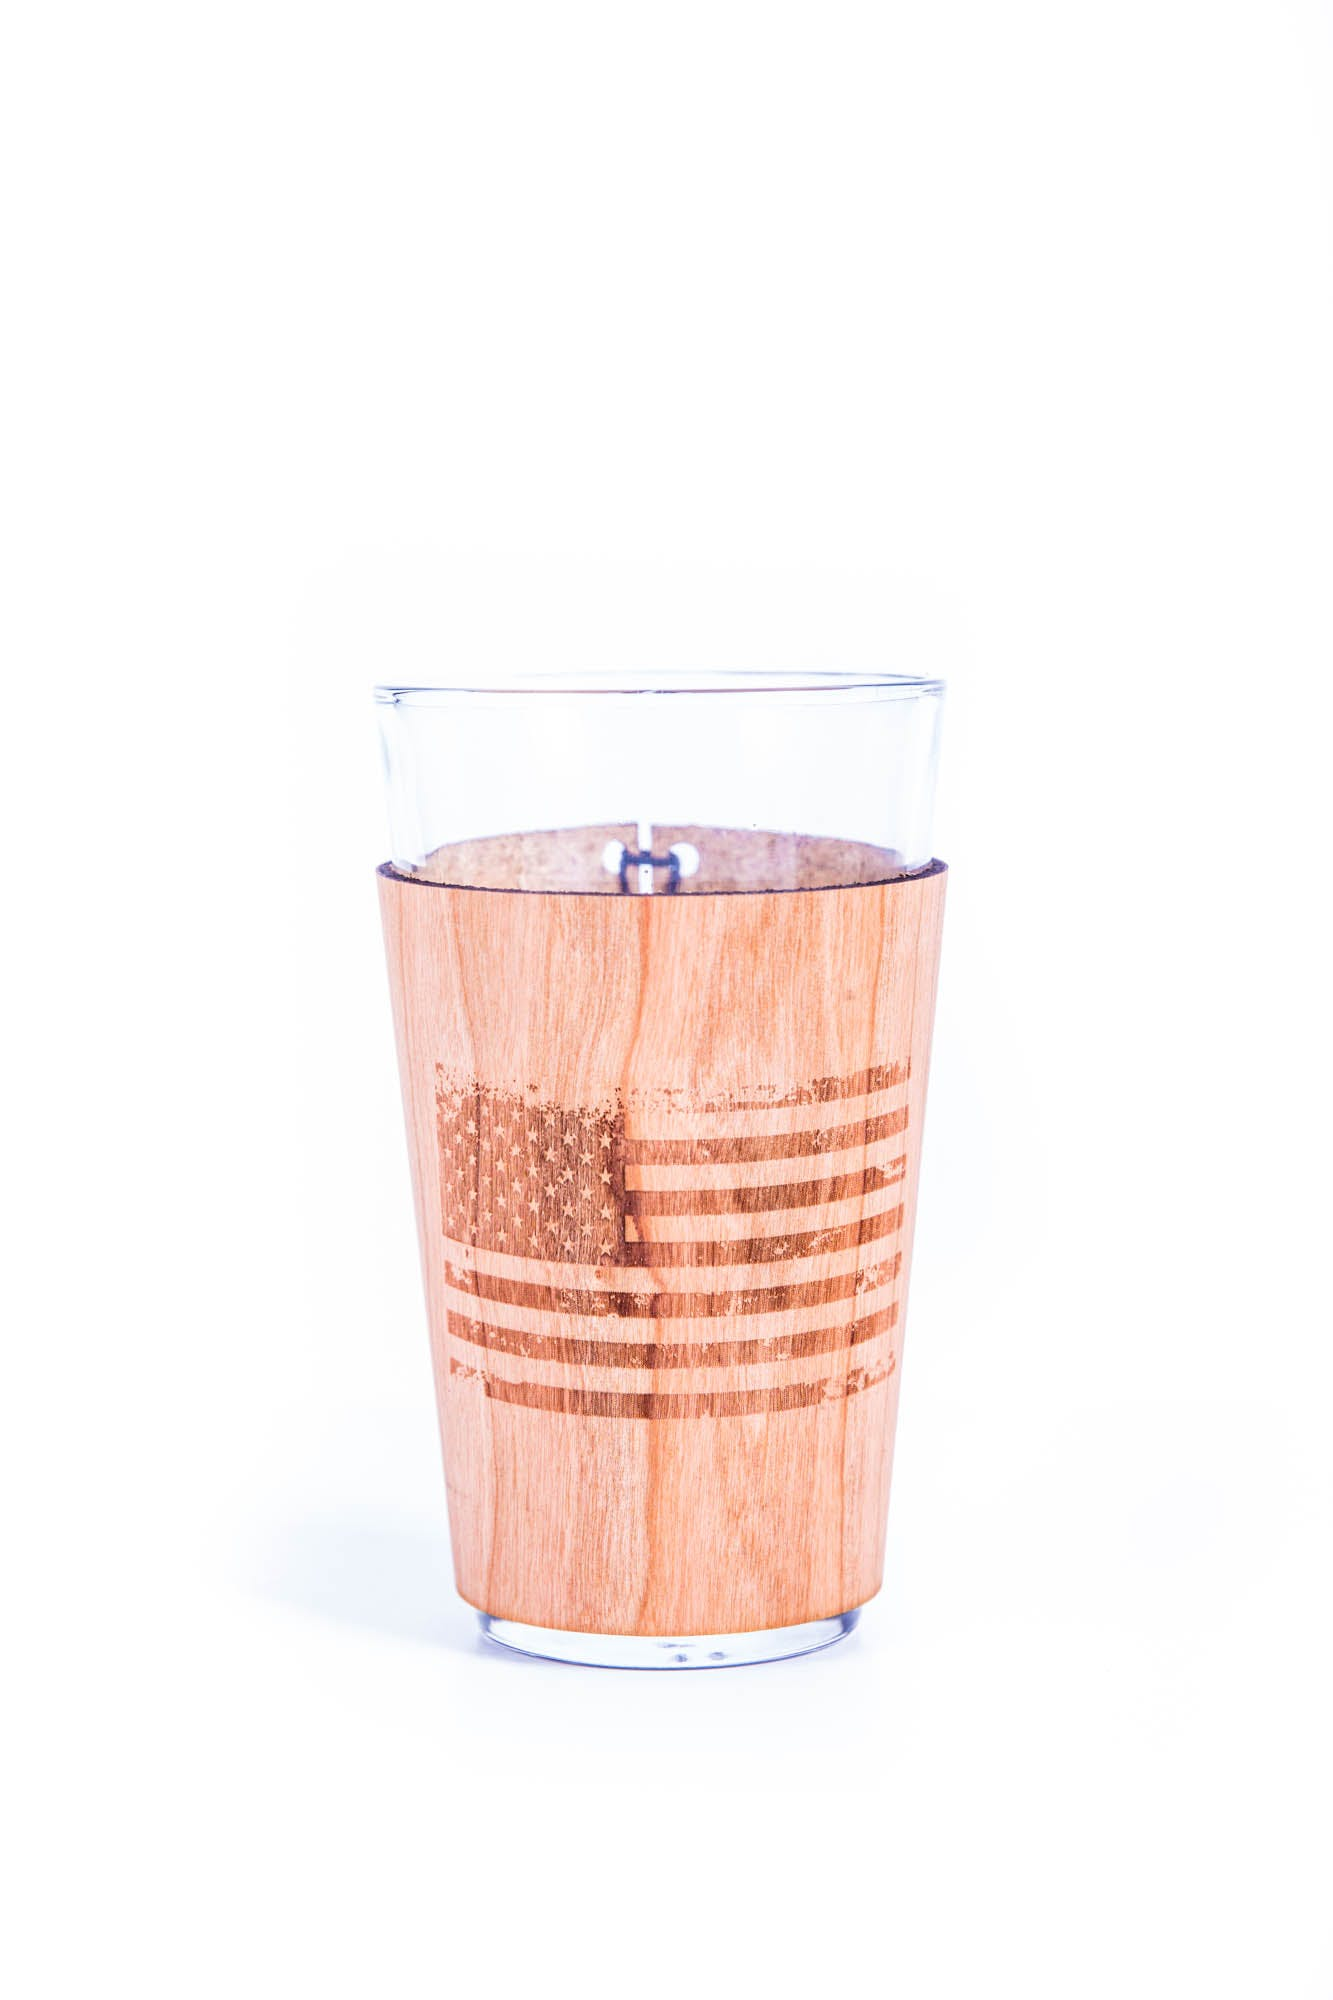 Real Wood Pint Koozie Koozie sold by Just 1 Tree